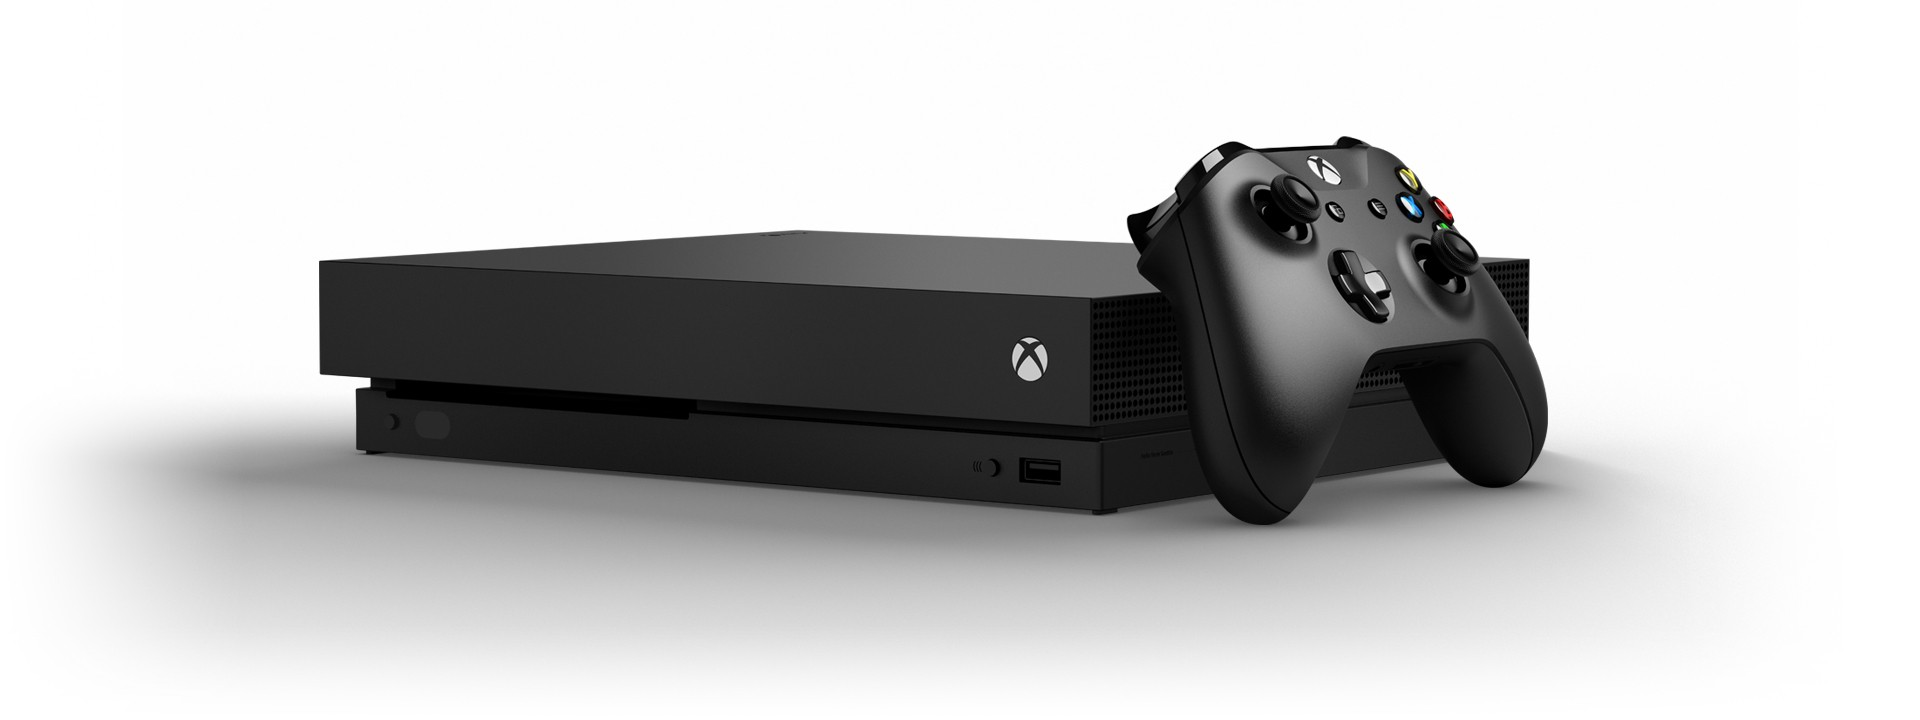 The 5 Reasons I Sold My Xbox One X - Alex Rowe - Medium